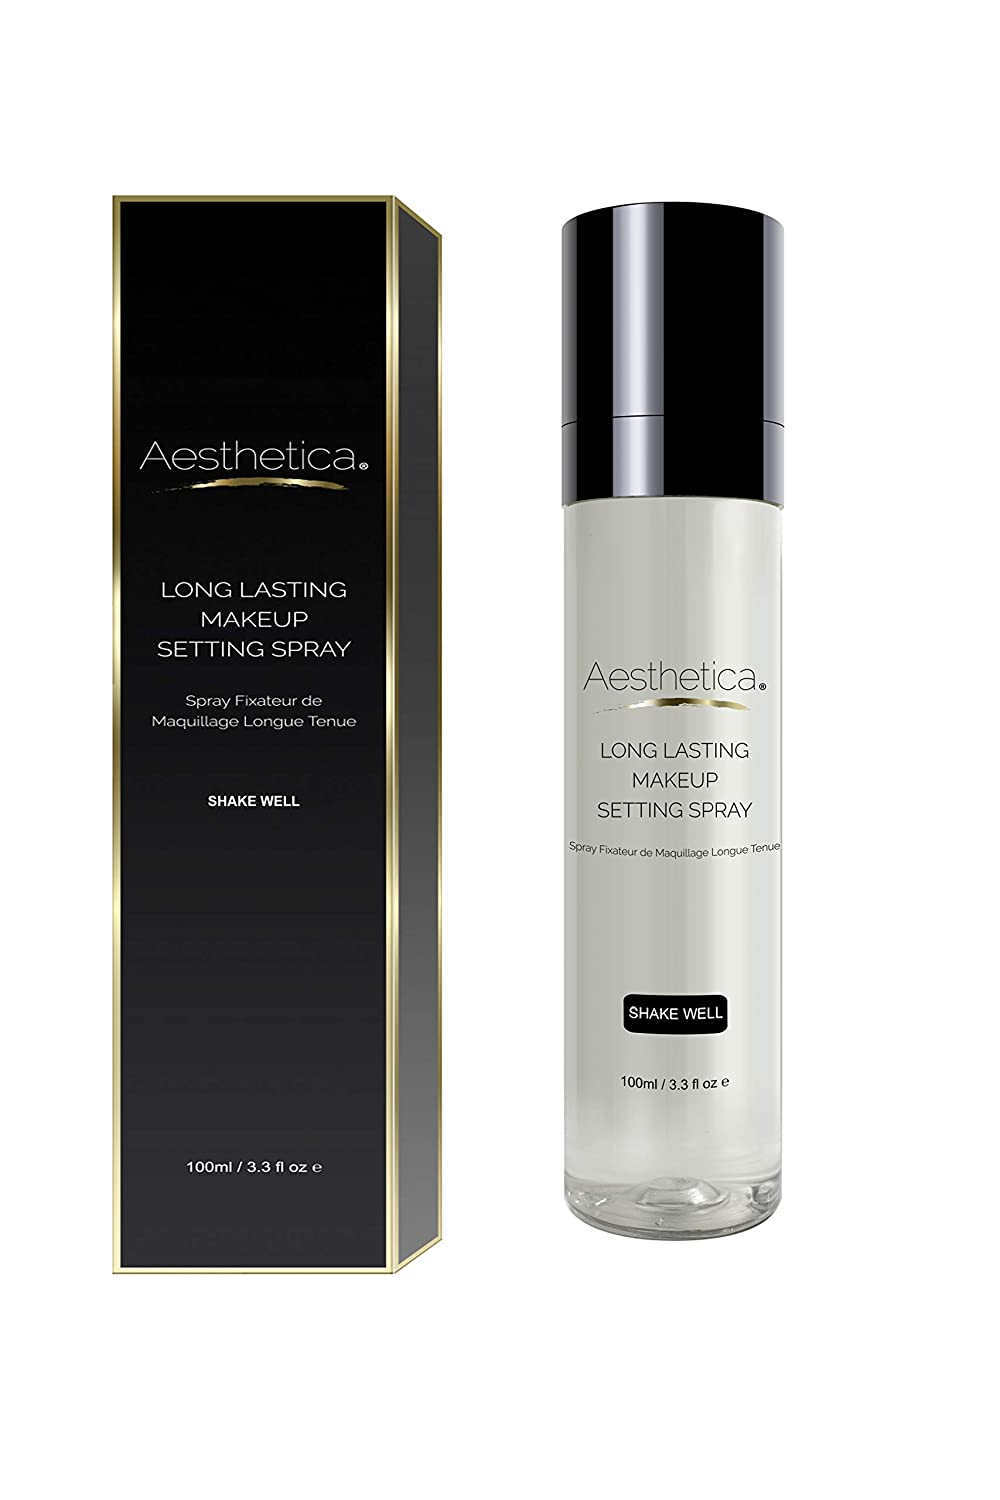 Aesthetica Long Lasting Makeup Setting Spray - Invisible Matte Setting and Finishing Spray with a Weightless Feel - All Day Wear